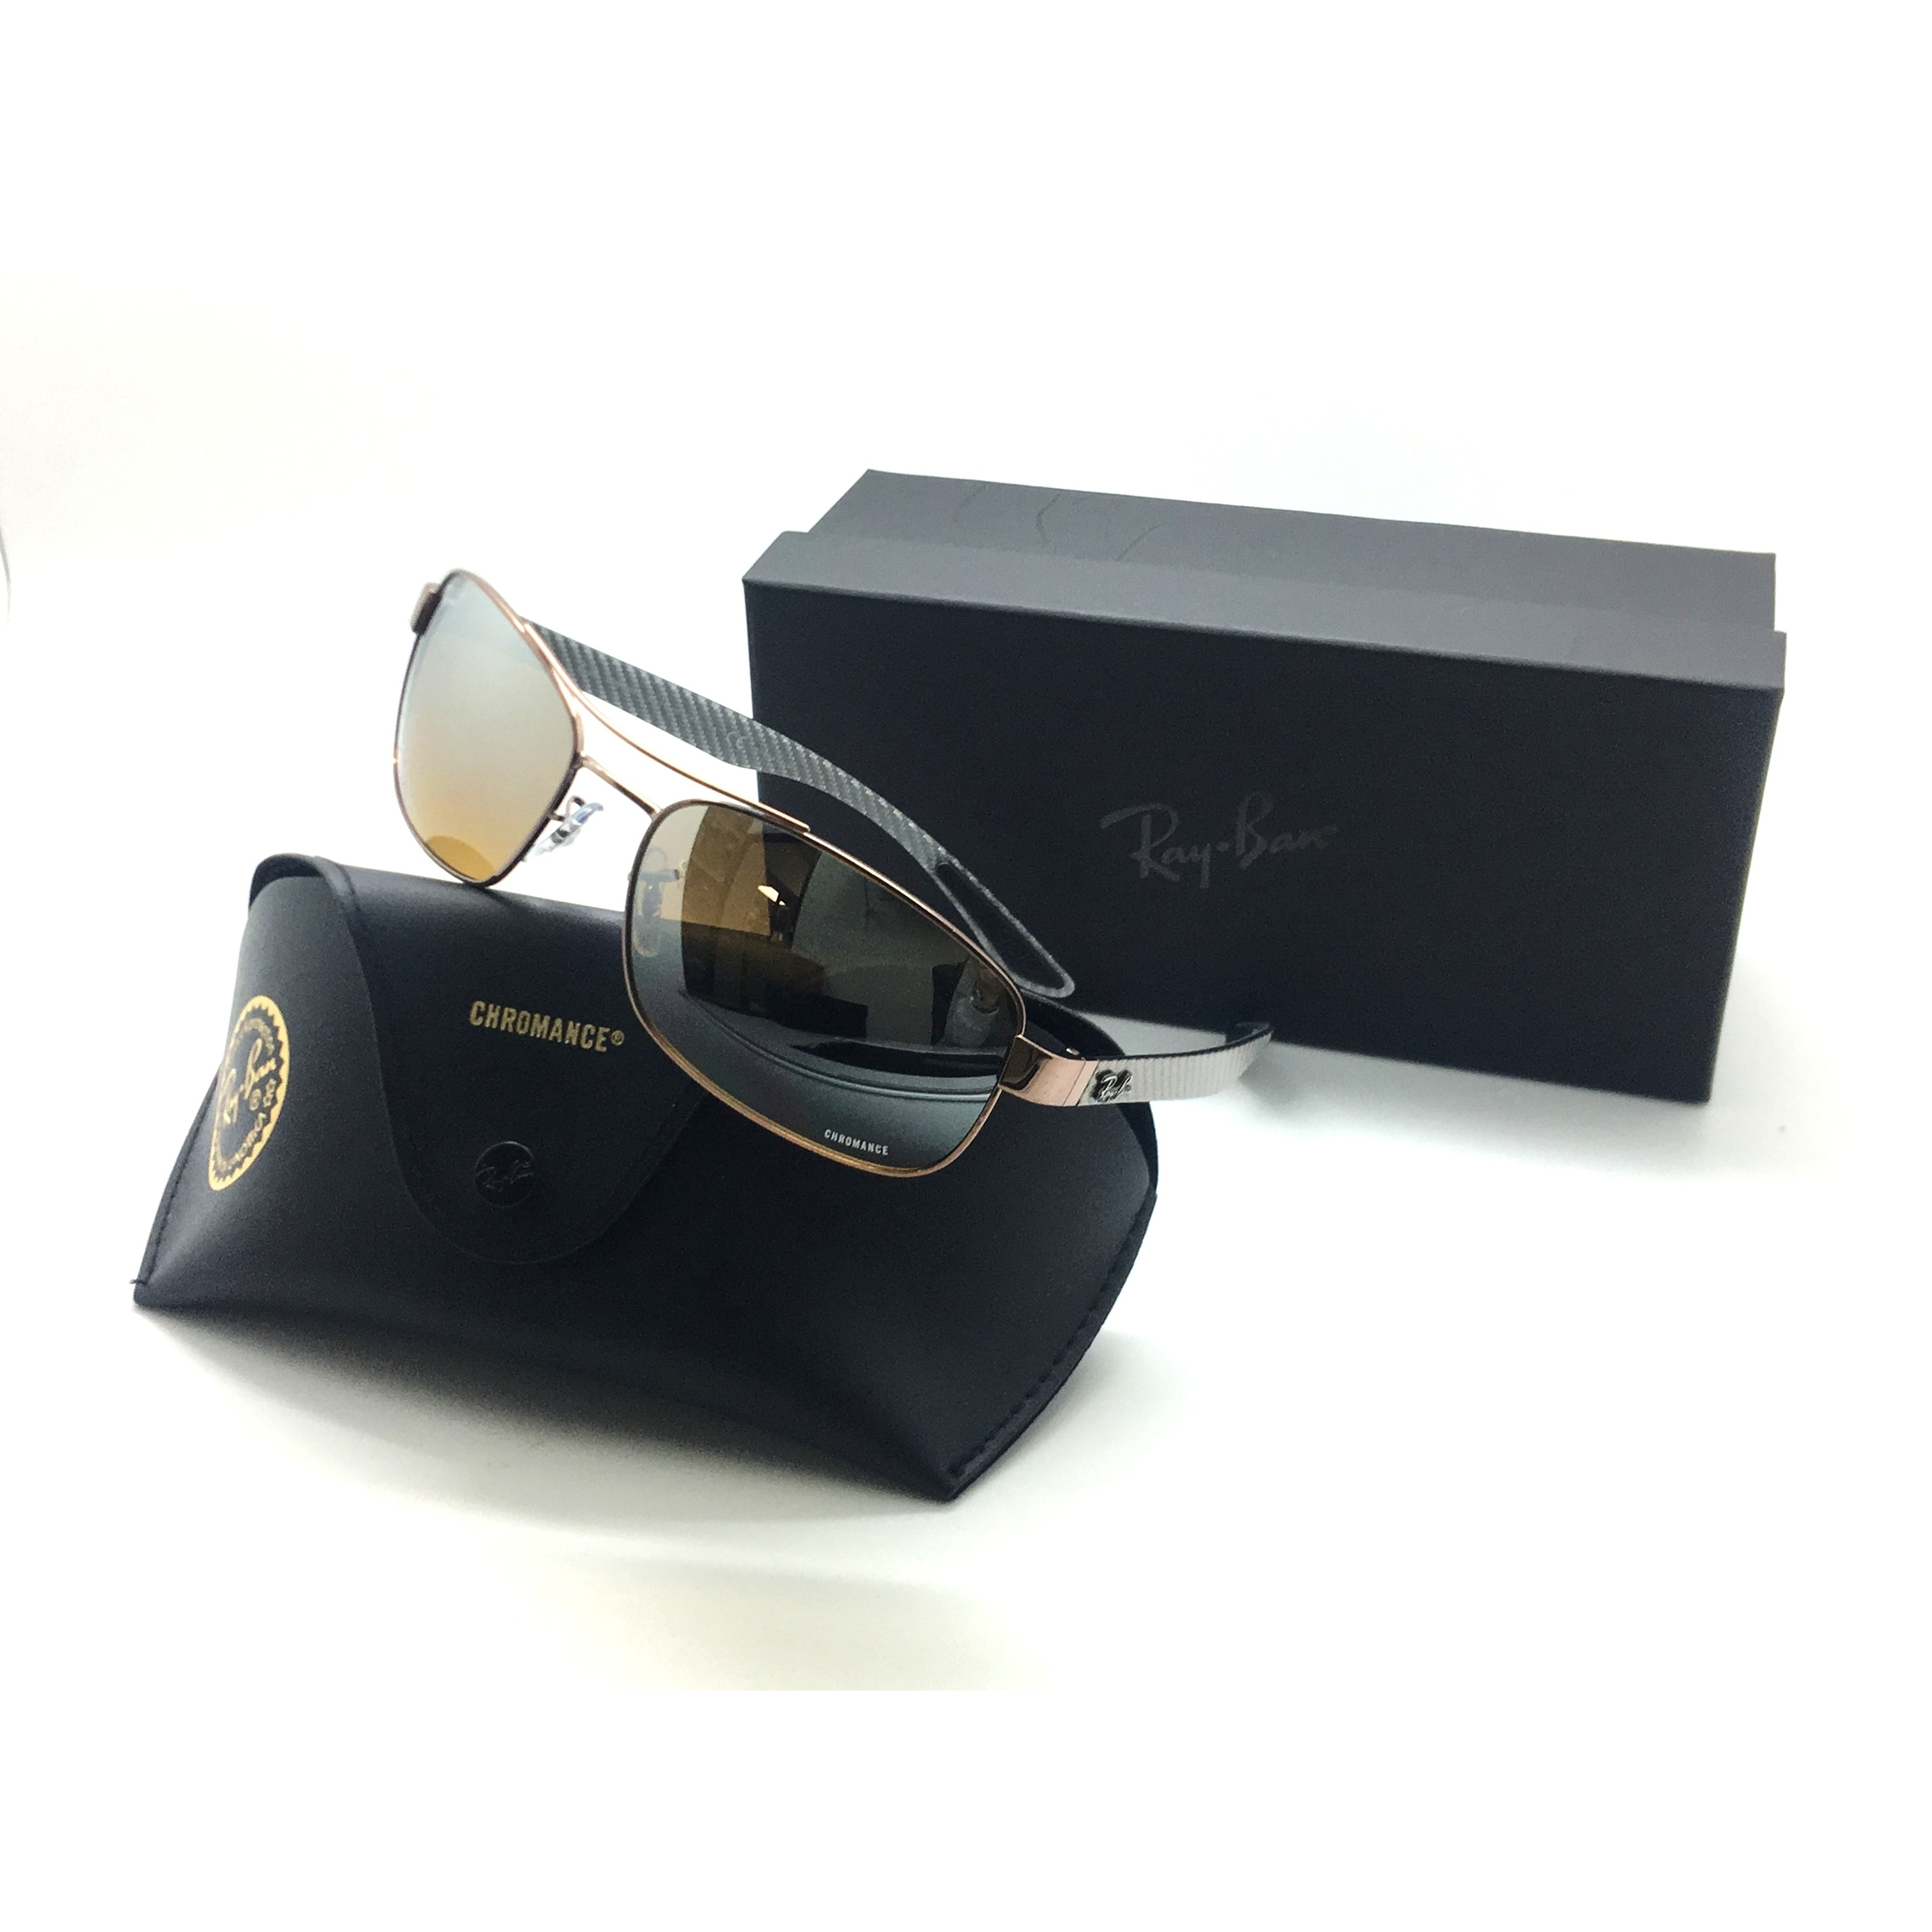 2e6eec05d90 Shop Ray-Ban chromance polarized sunglasses rb 8318ch 121 a2 brown brn  mirror 62 Italy - Ships To Canada - Overstock - 23062408